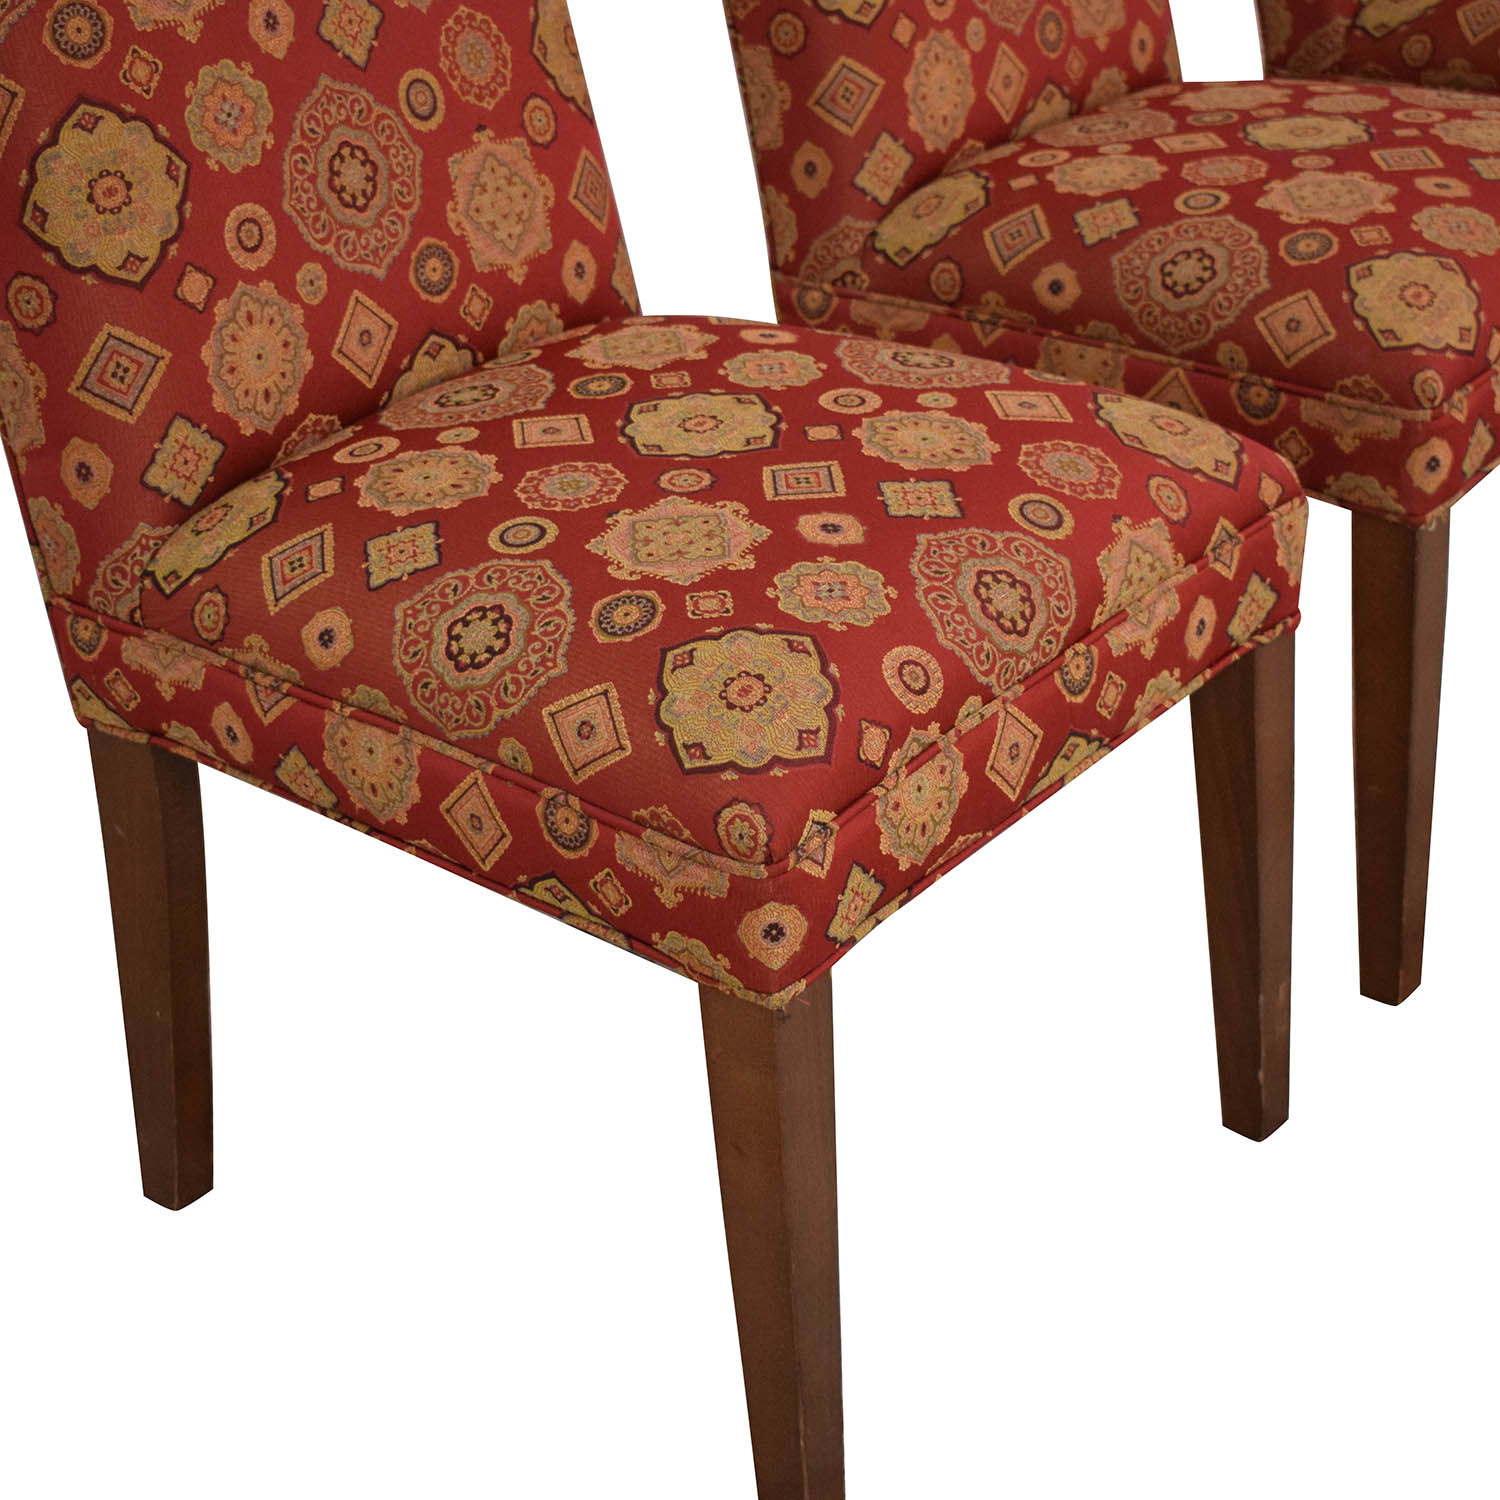 Ethan Allen Ethan Allen Upholstered Dining Chairs nj